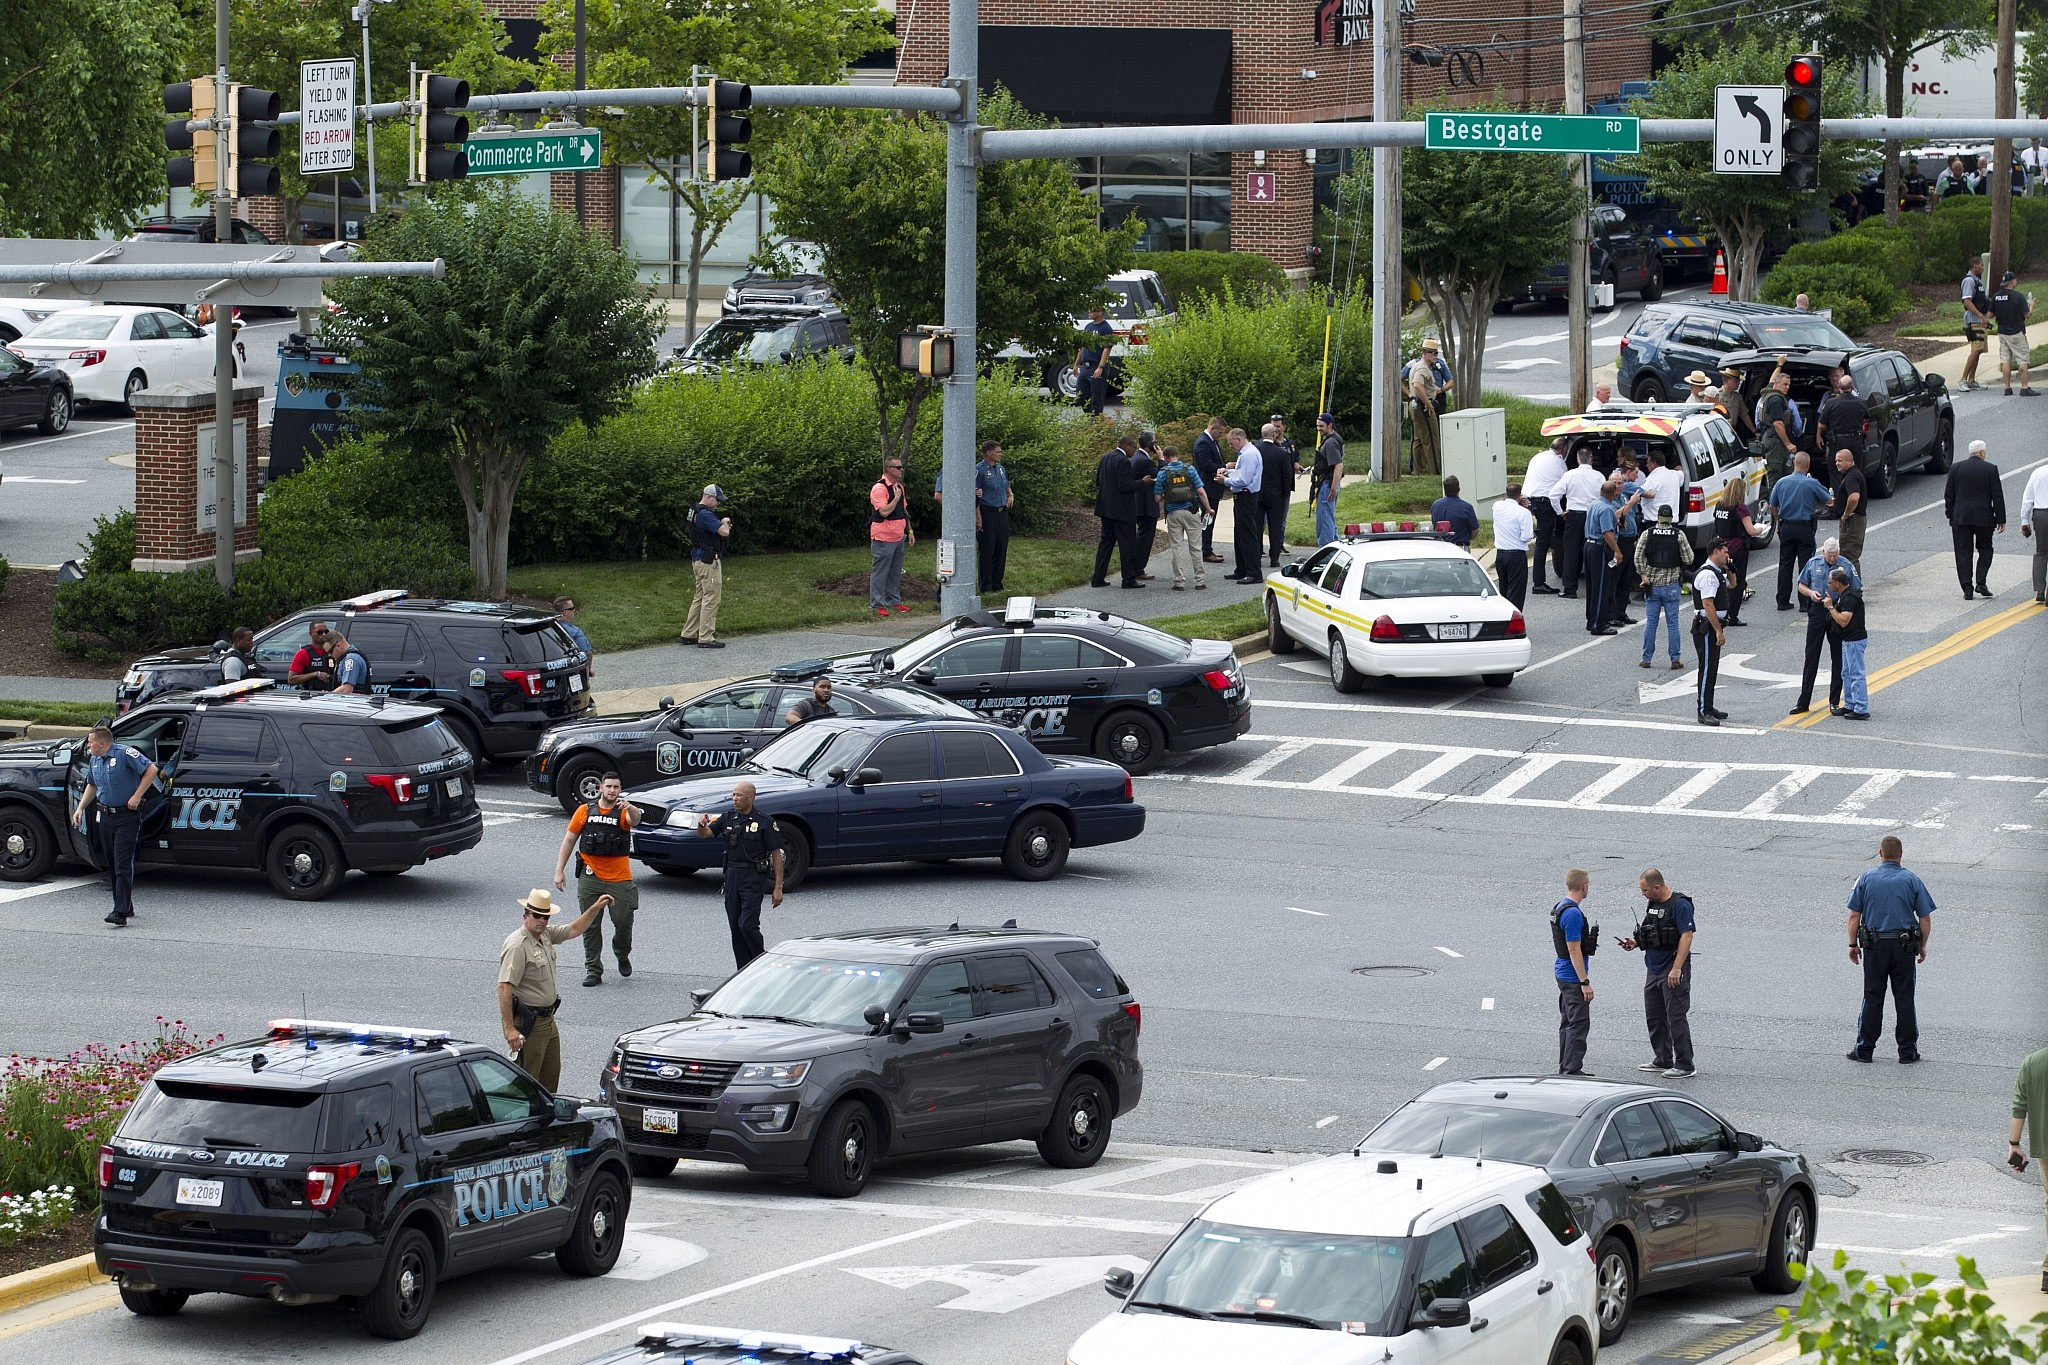 Maryland shooting: Capital-Gazette owner 'deeply saddened'